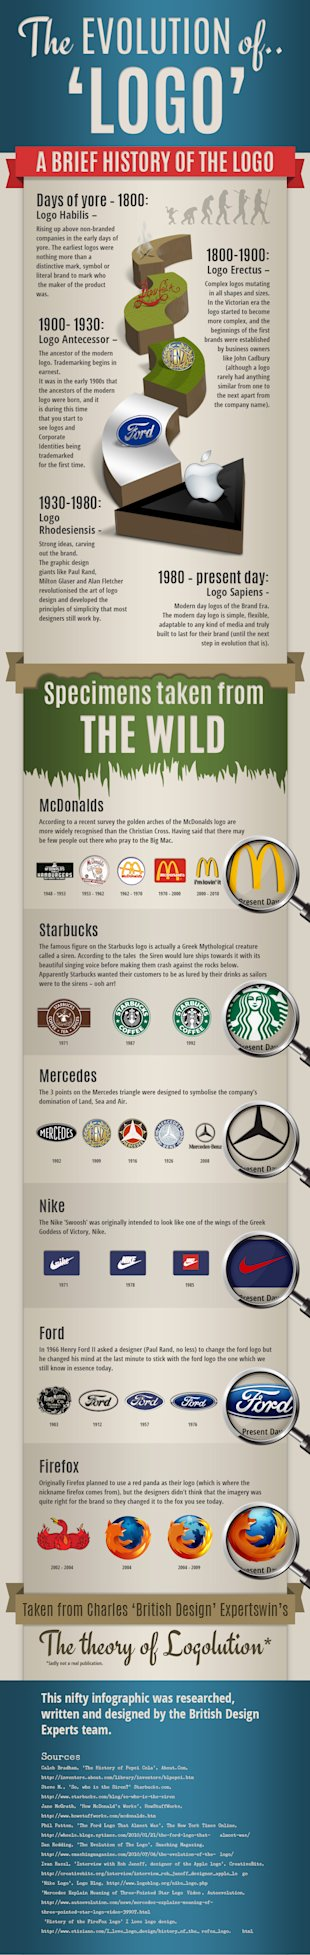 The History of Logo Design & What It Can Teach Us [Infographic] image evolution of logo